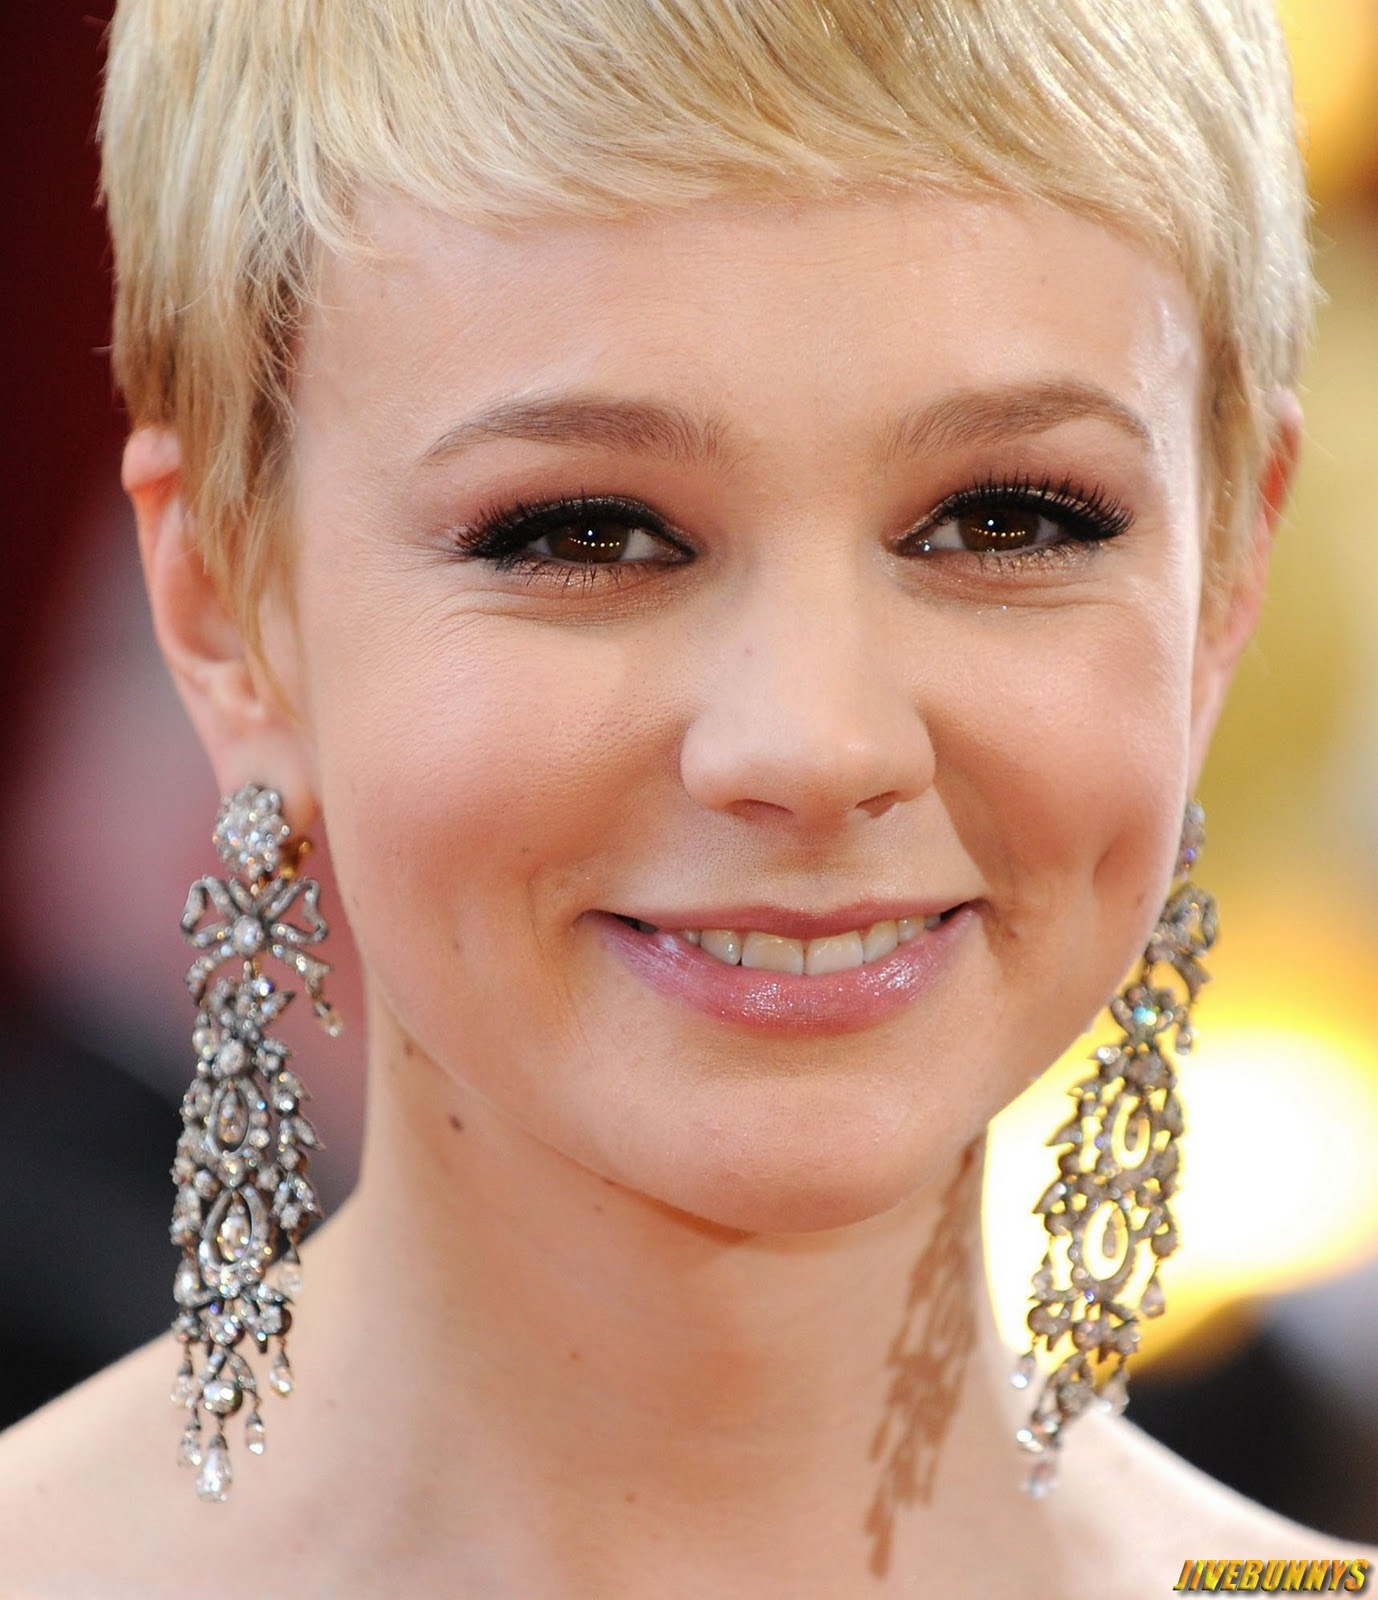 Jivebunnys Female Cele... Carey Mulligan News